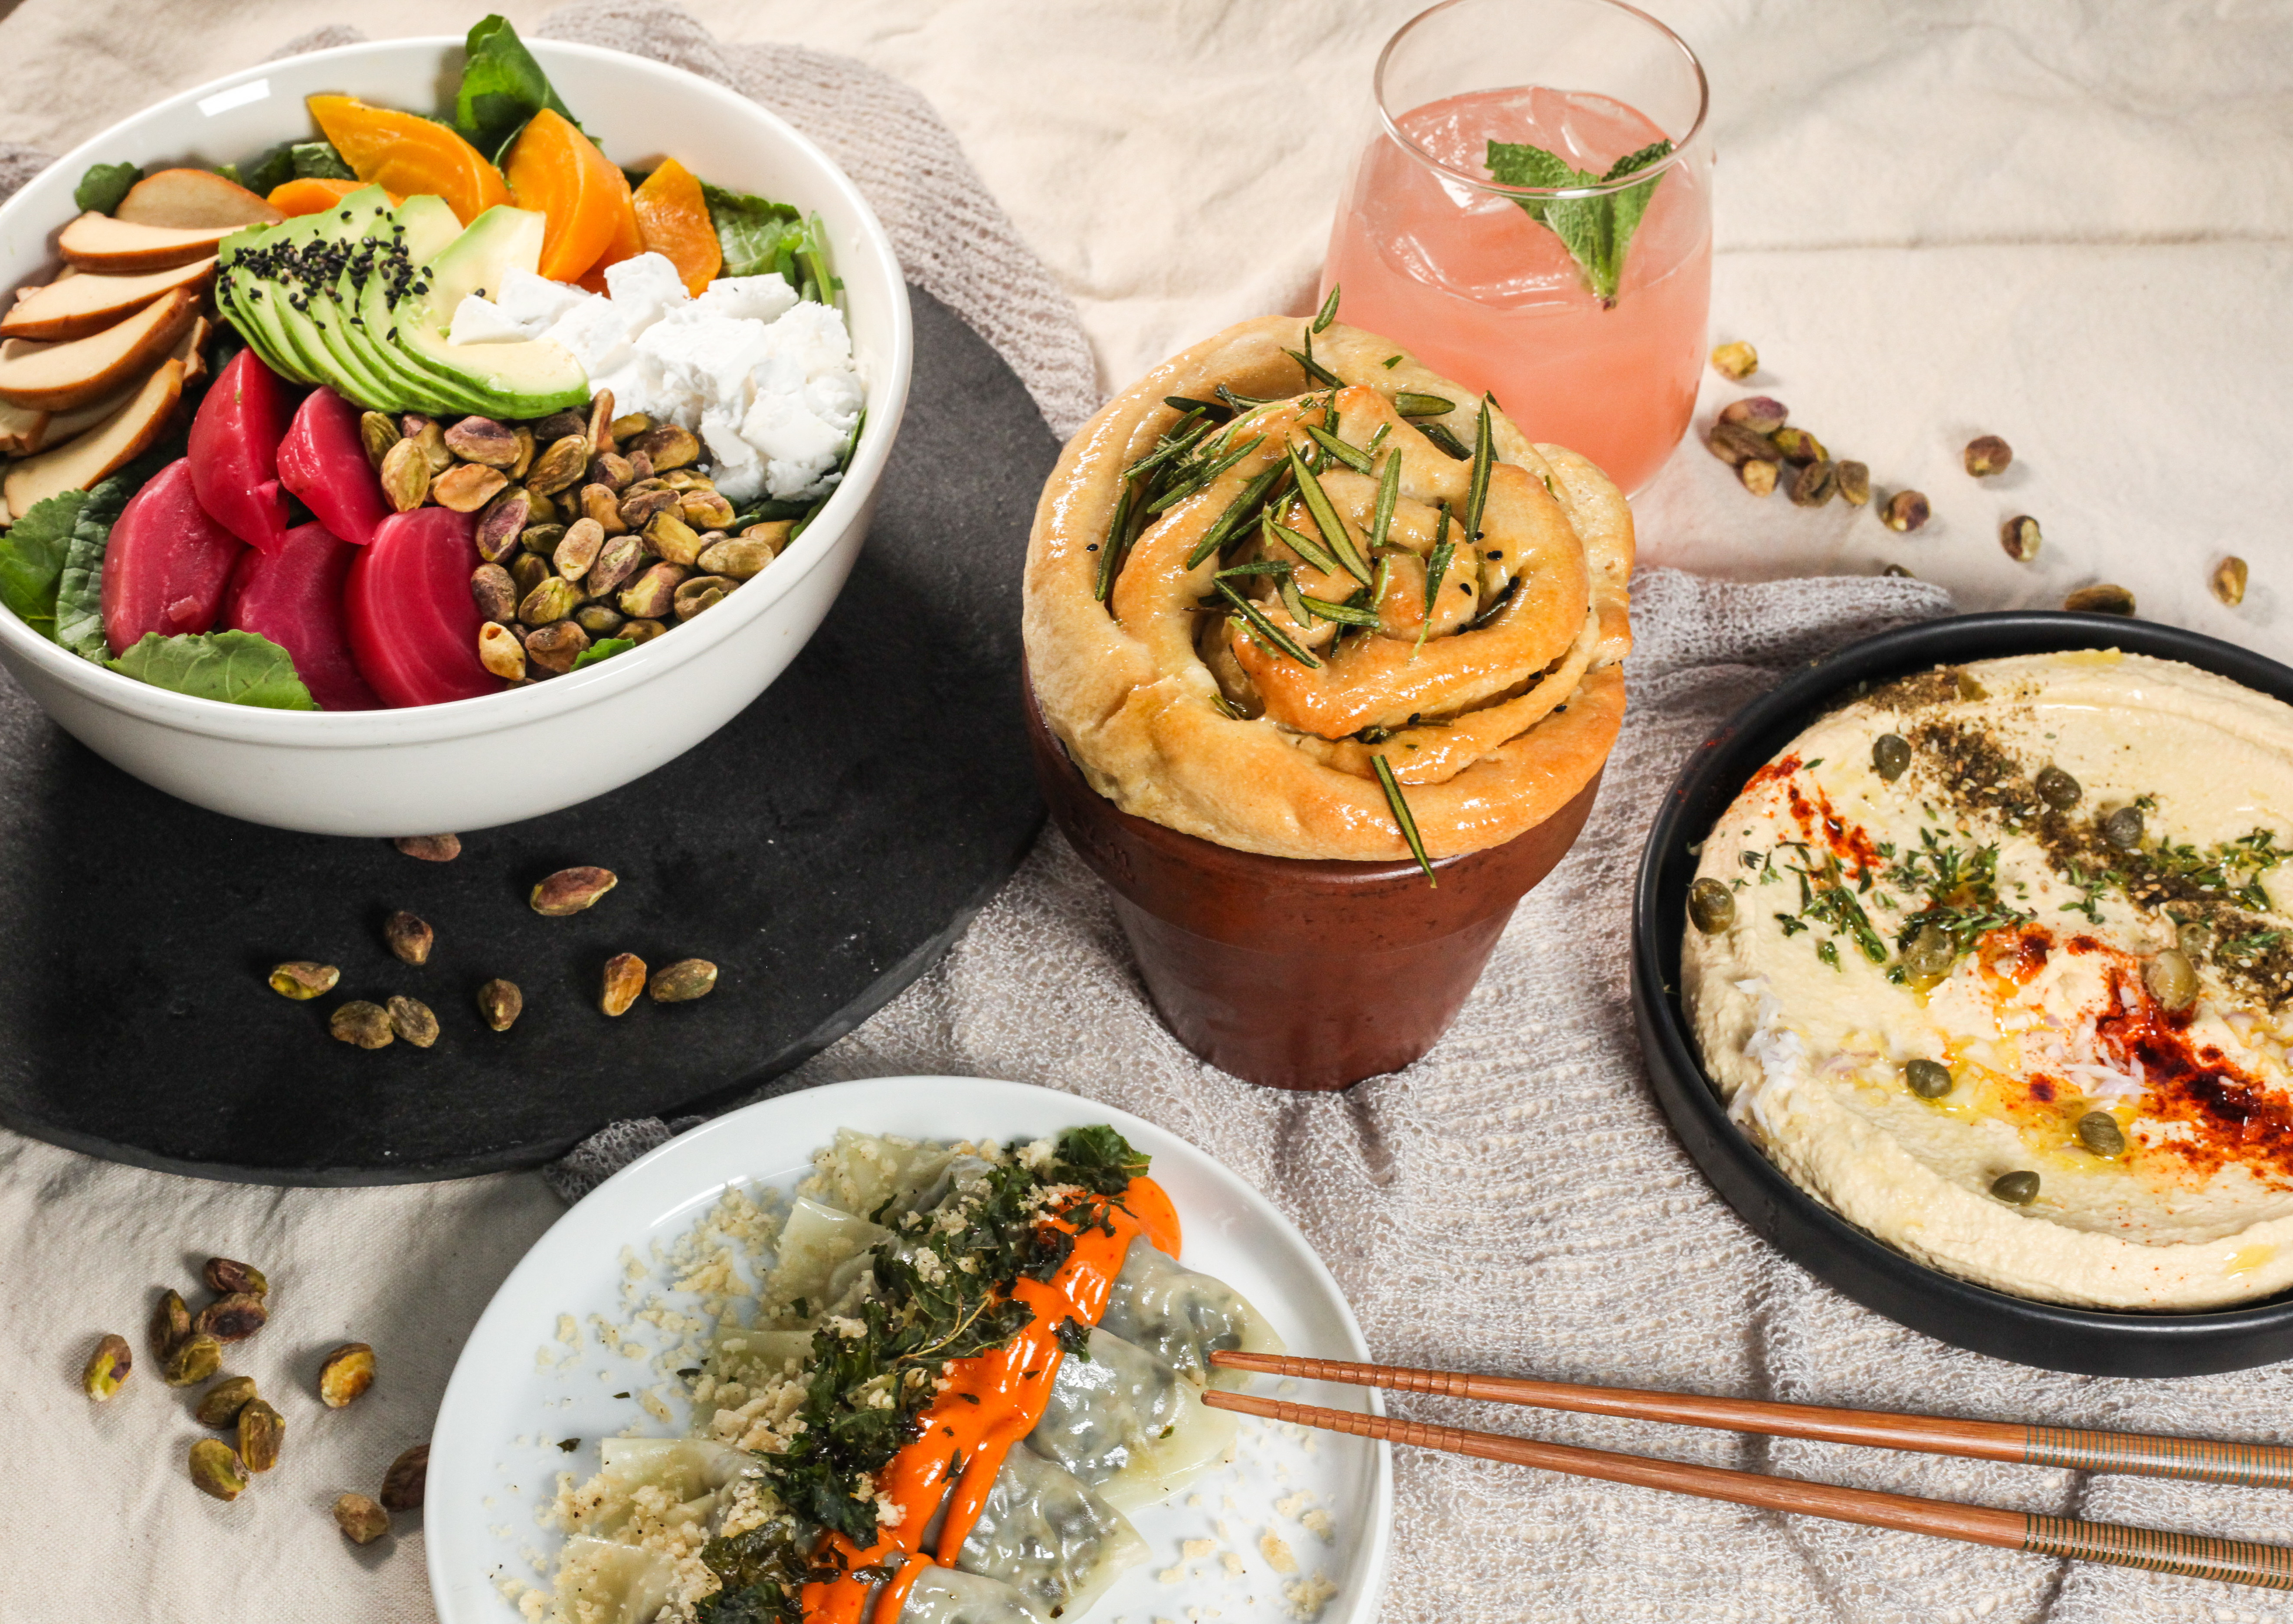 A spread of dishes from Beyond Sushi, including a salad packed with colorful veggies, a white plate topped with a line of dumplings, and a black plate of hummus.